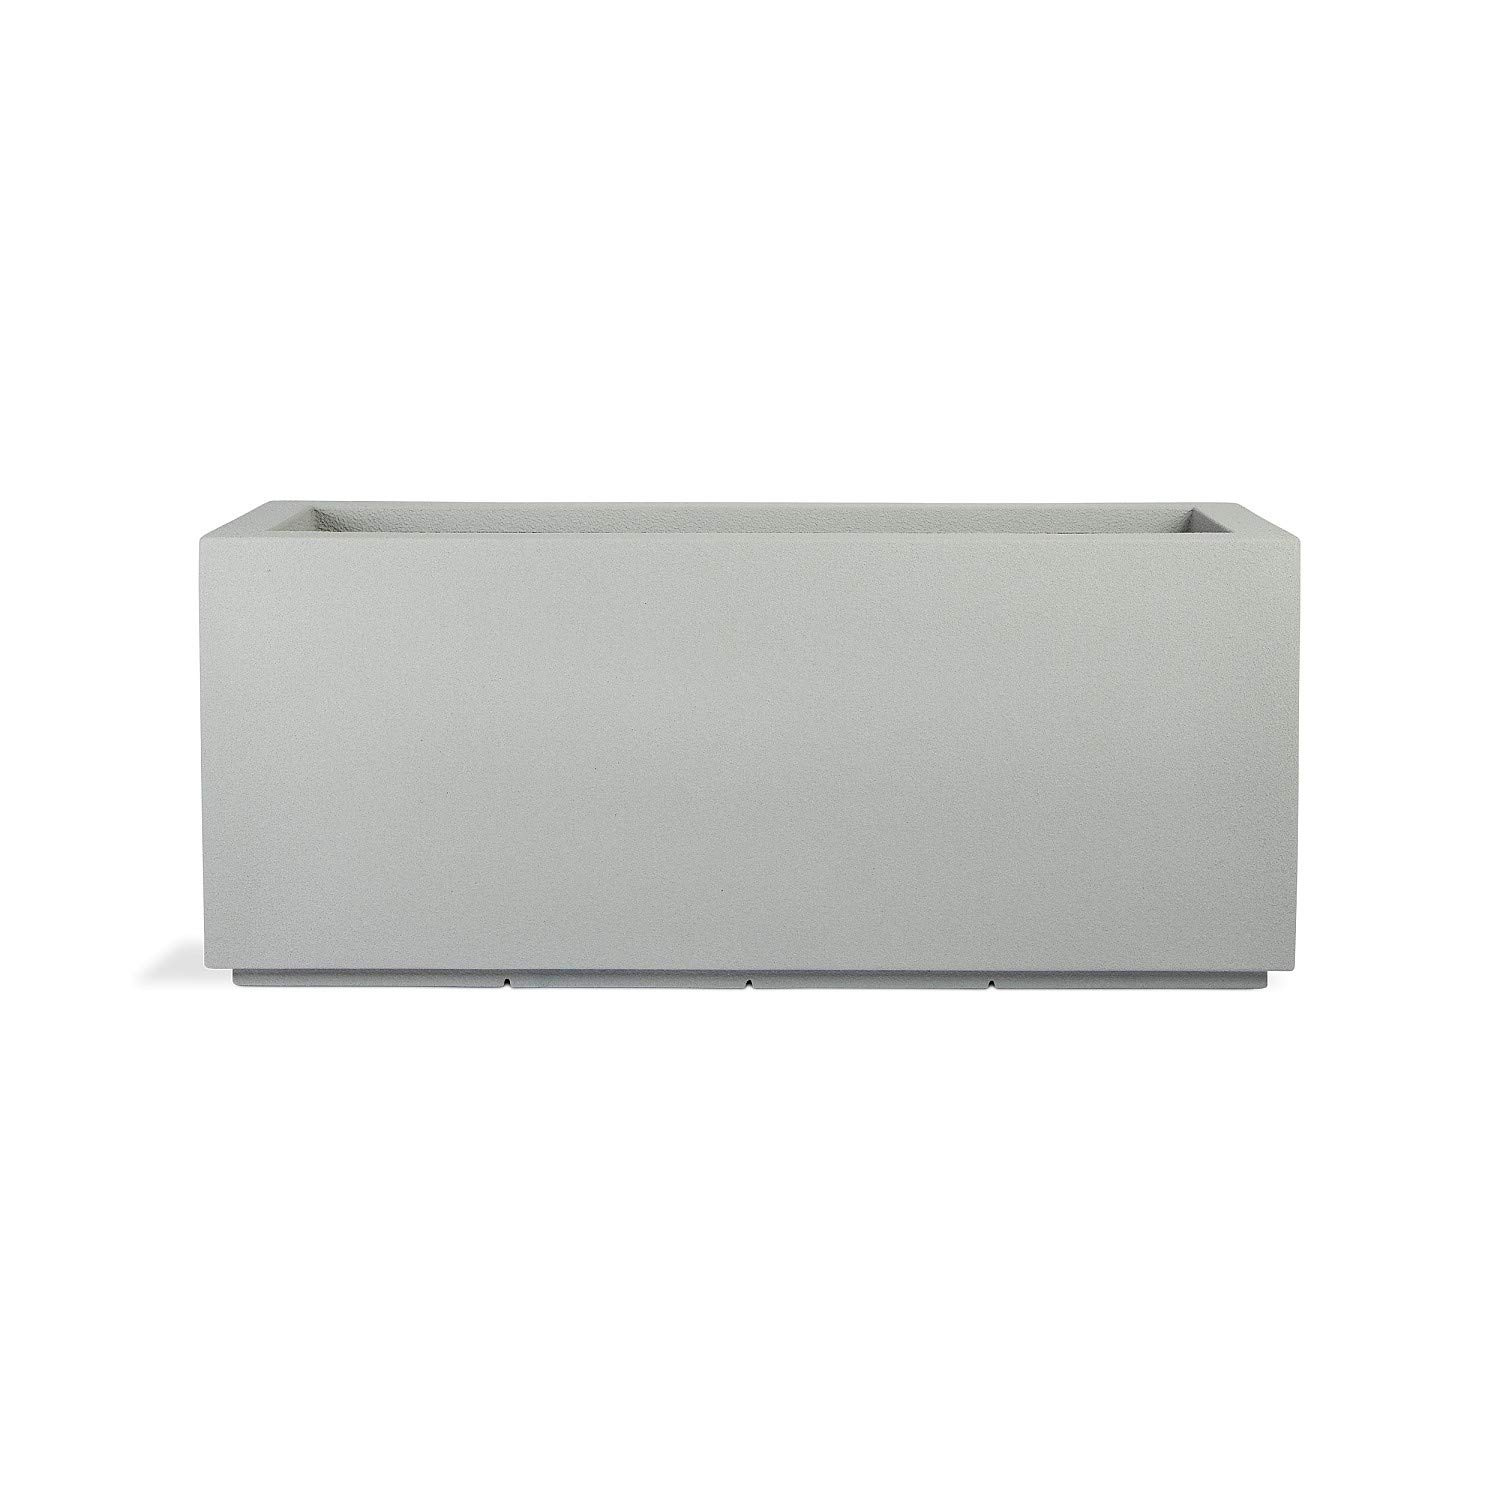 """PolyStone Milan Tall Modern Outdoor/Indoor Rectangular Trough Planter, Lightweight, Heavy Duty, Weather Resistant, Polymer Finish, Commercial and Residential, 46"""" W x 19"""" H (Concrete Gray)"""